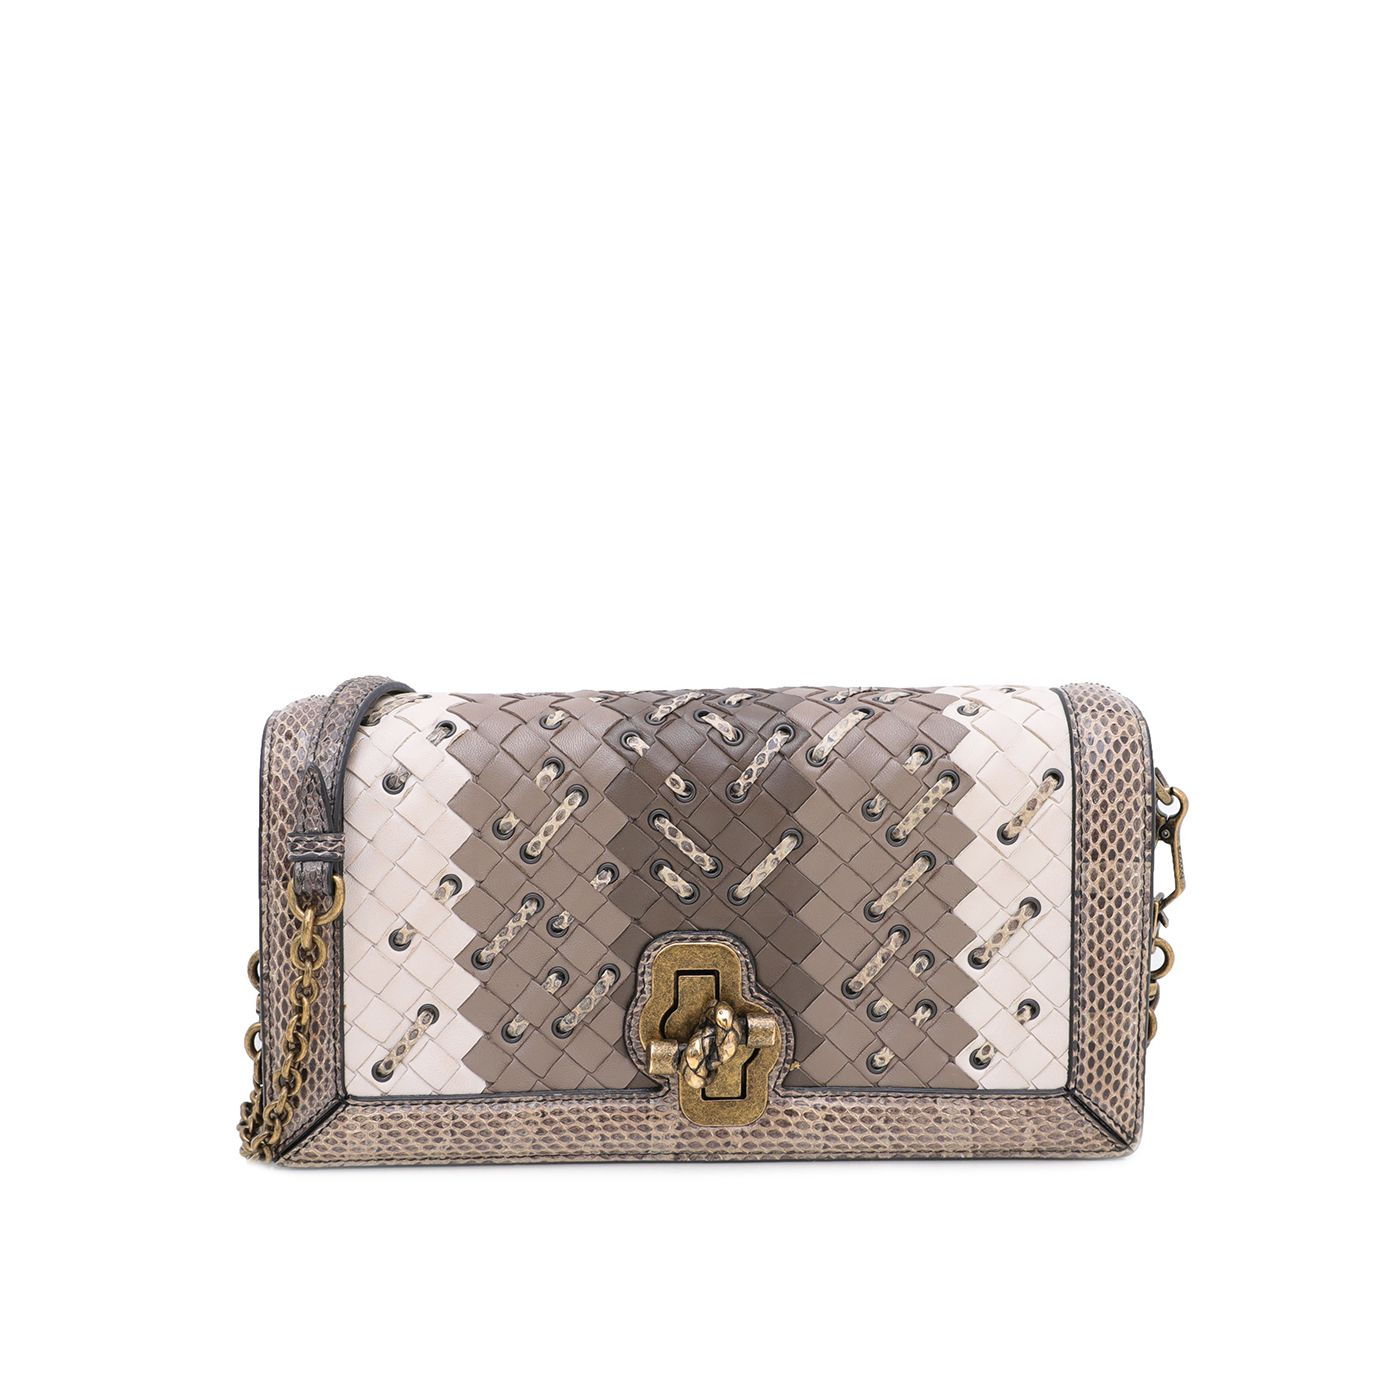 Bottega Veneta Tricolor Mist Intrecciato Club Stitch Olimpia Knot Clutch